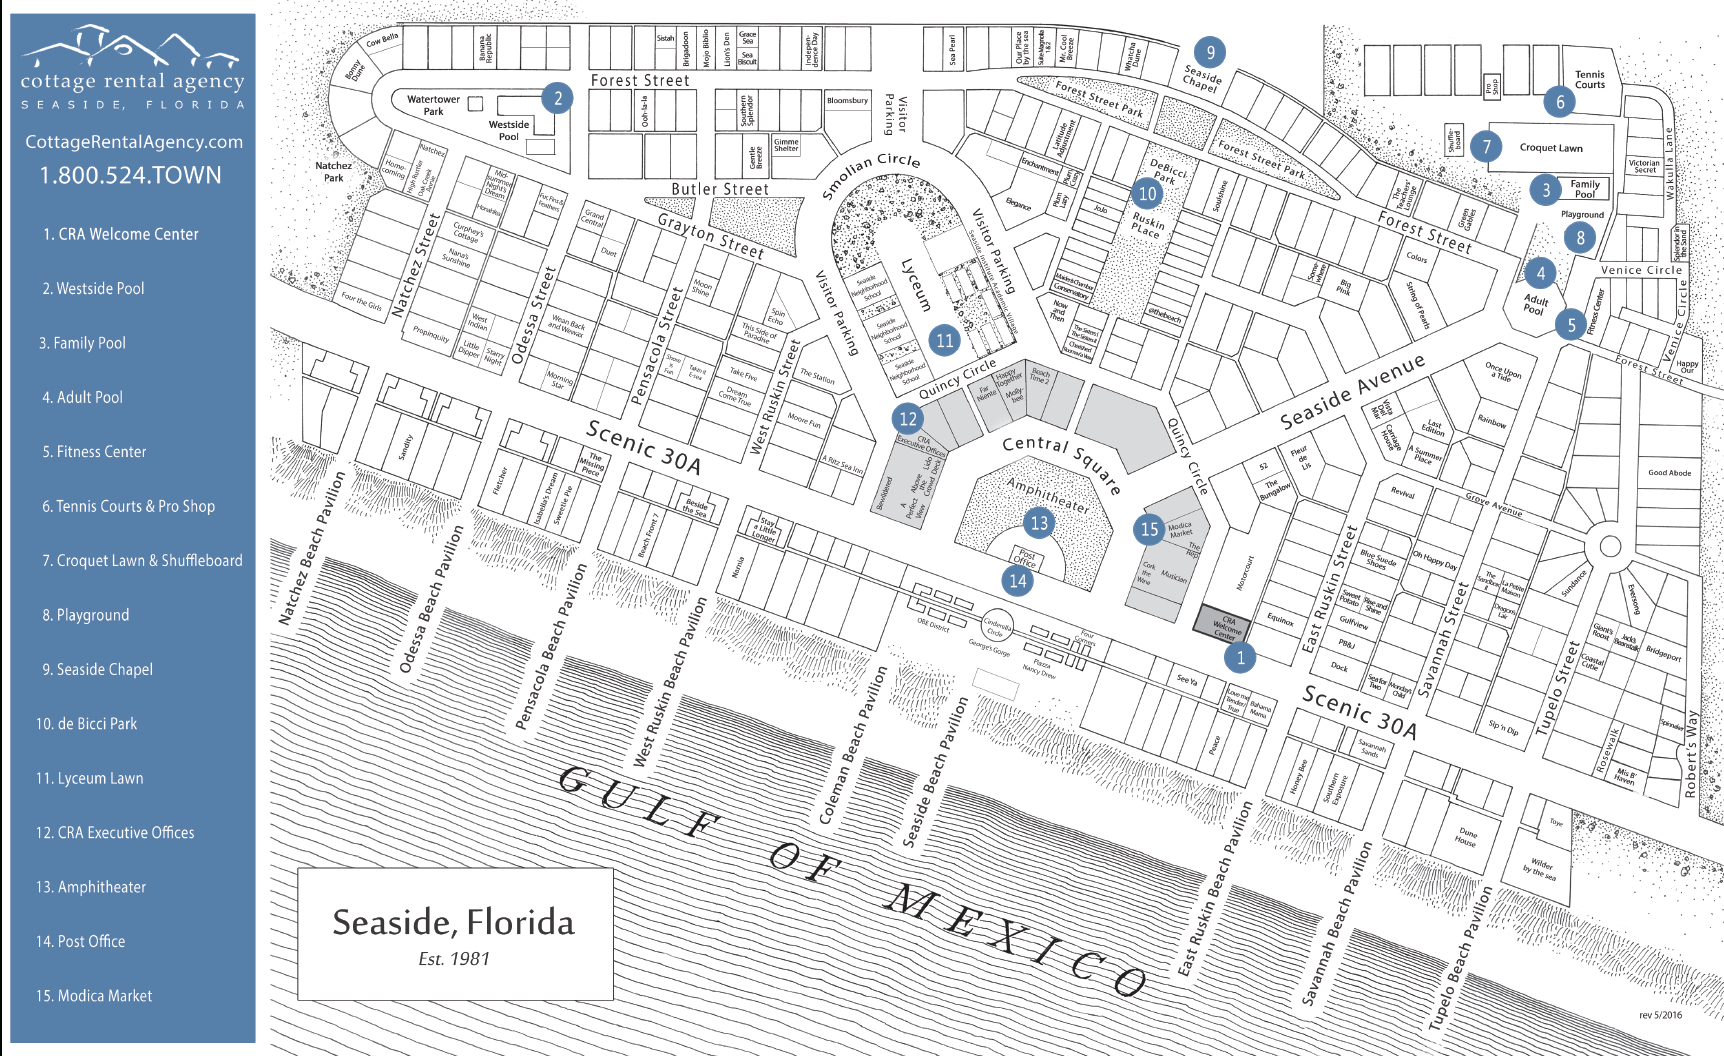 Seaside, Florida And 30A Guest Services – Seaside Florida Vacation - Seaside Florida Map